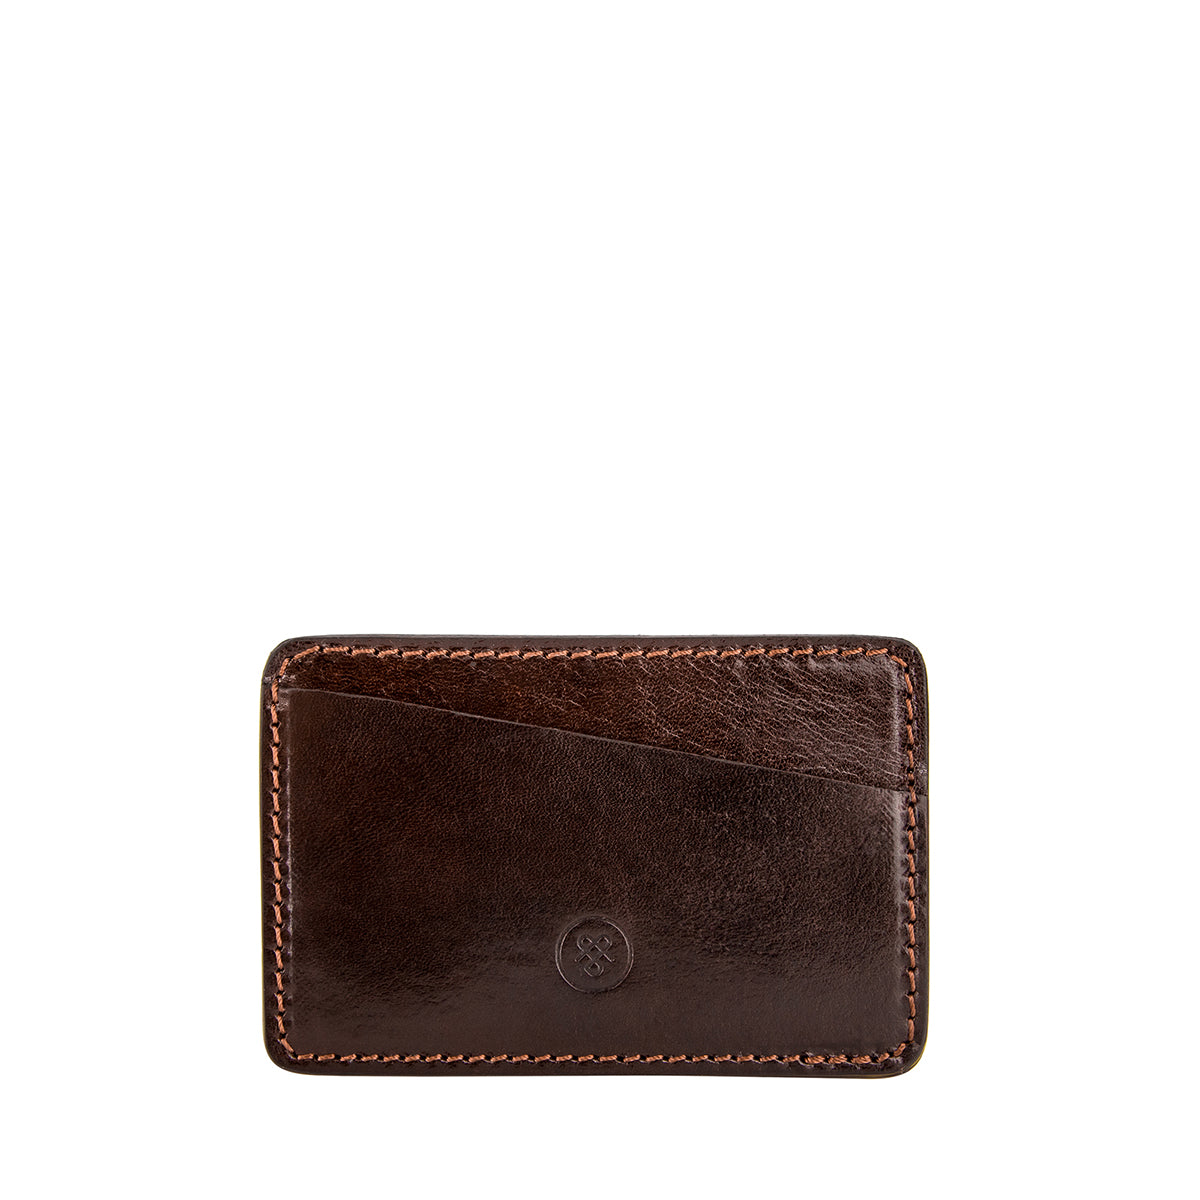 Image 2 of the 'Max' Luxury Brown Leather Card Case